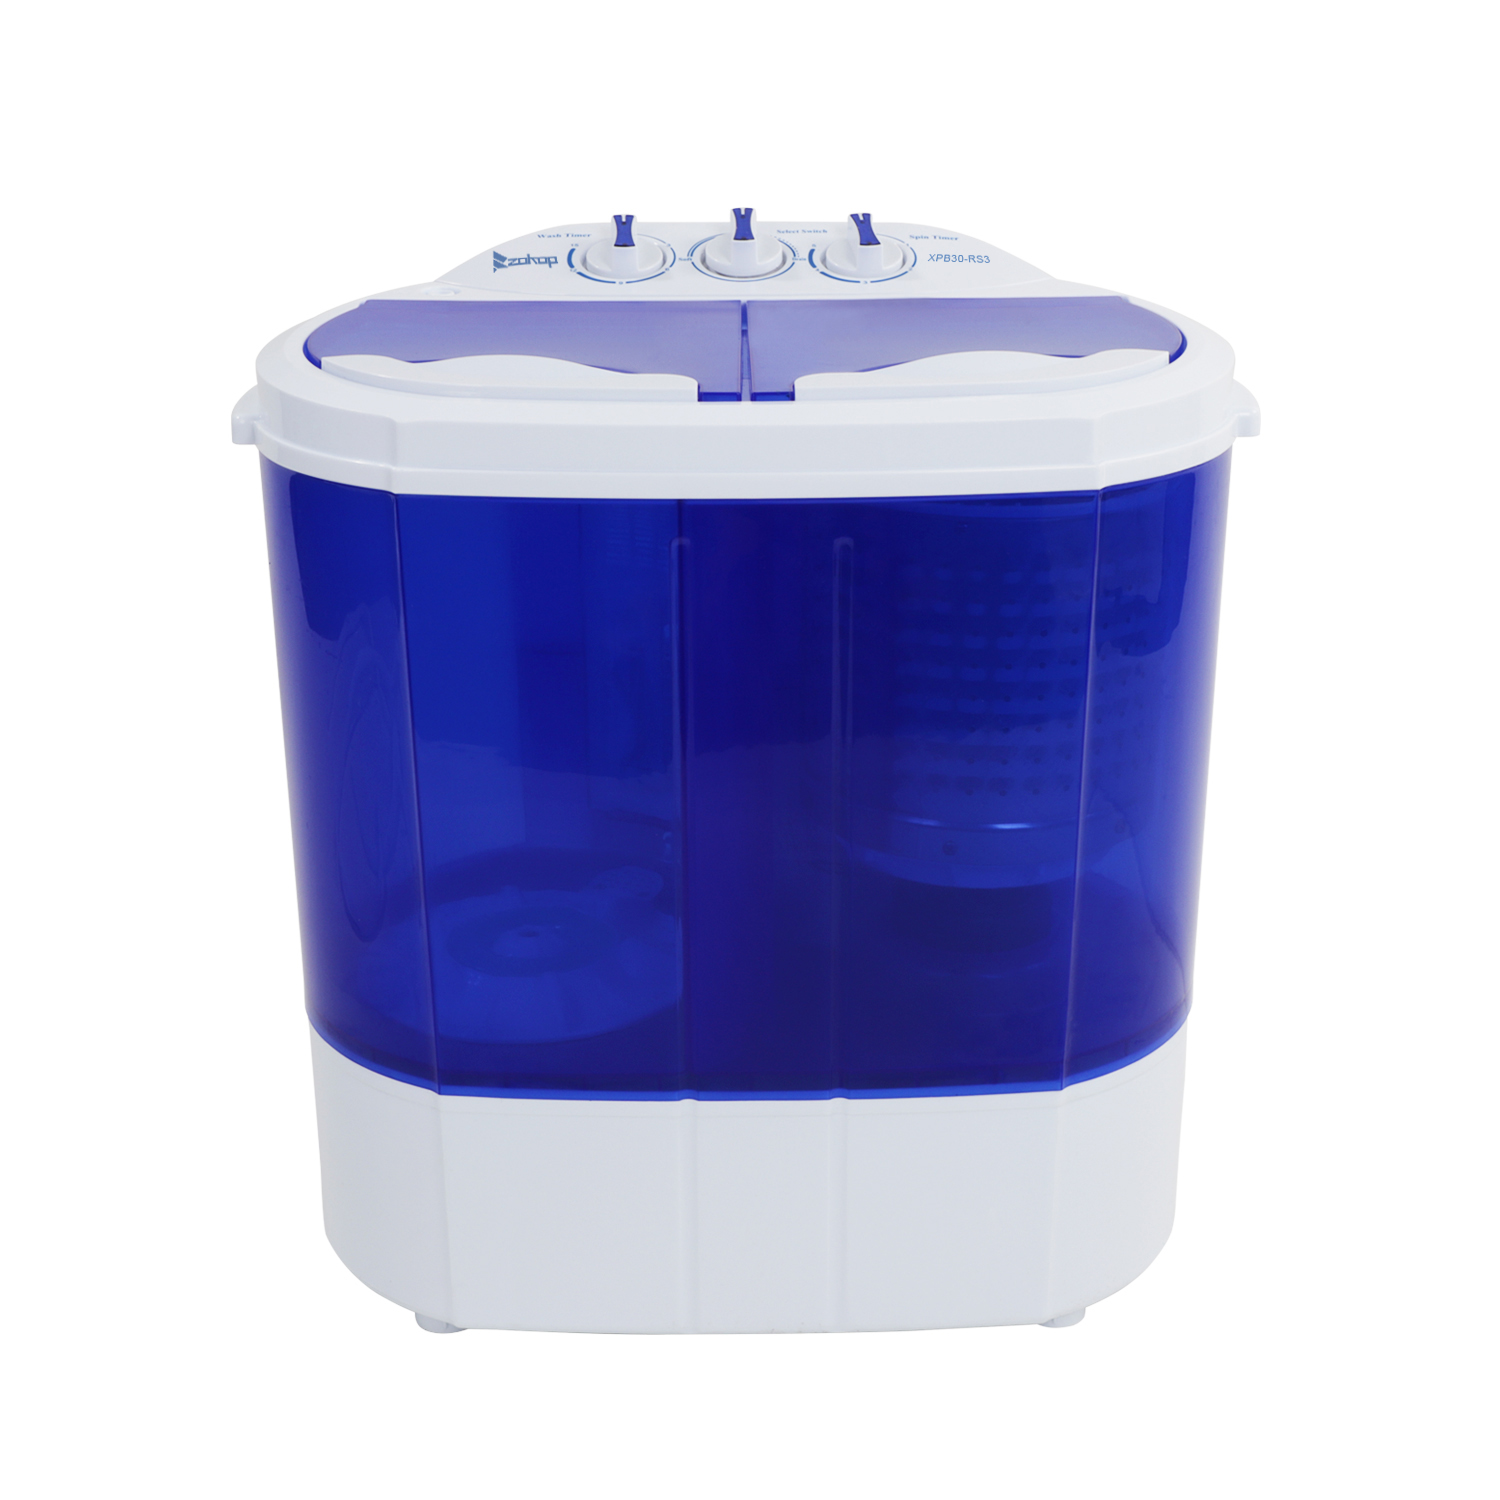 ZOKOP XPB30-RS3 10.4Lbs Semi-automatic Twin Tube Washing Machine US Standard White /& Blue,help you to wash dirty clothes quickly